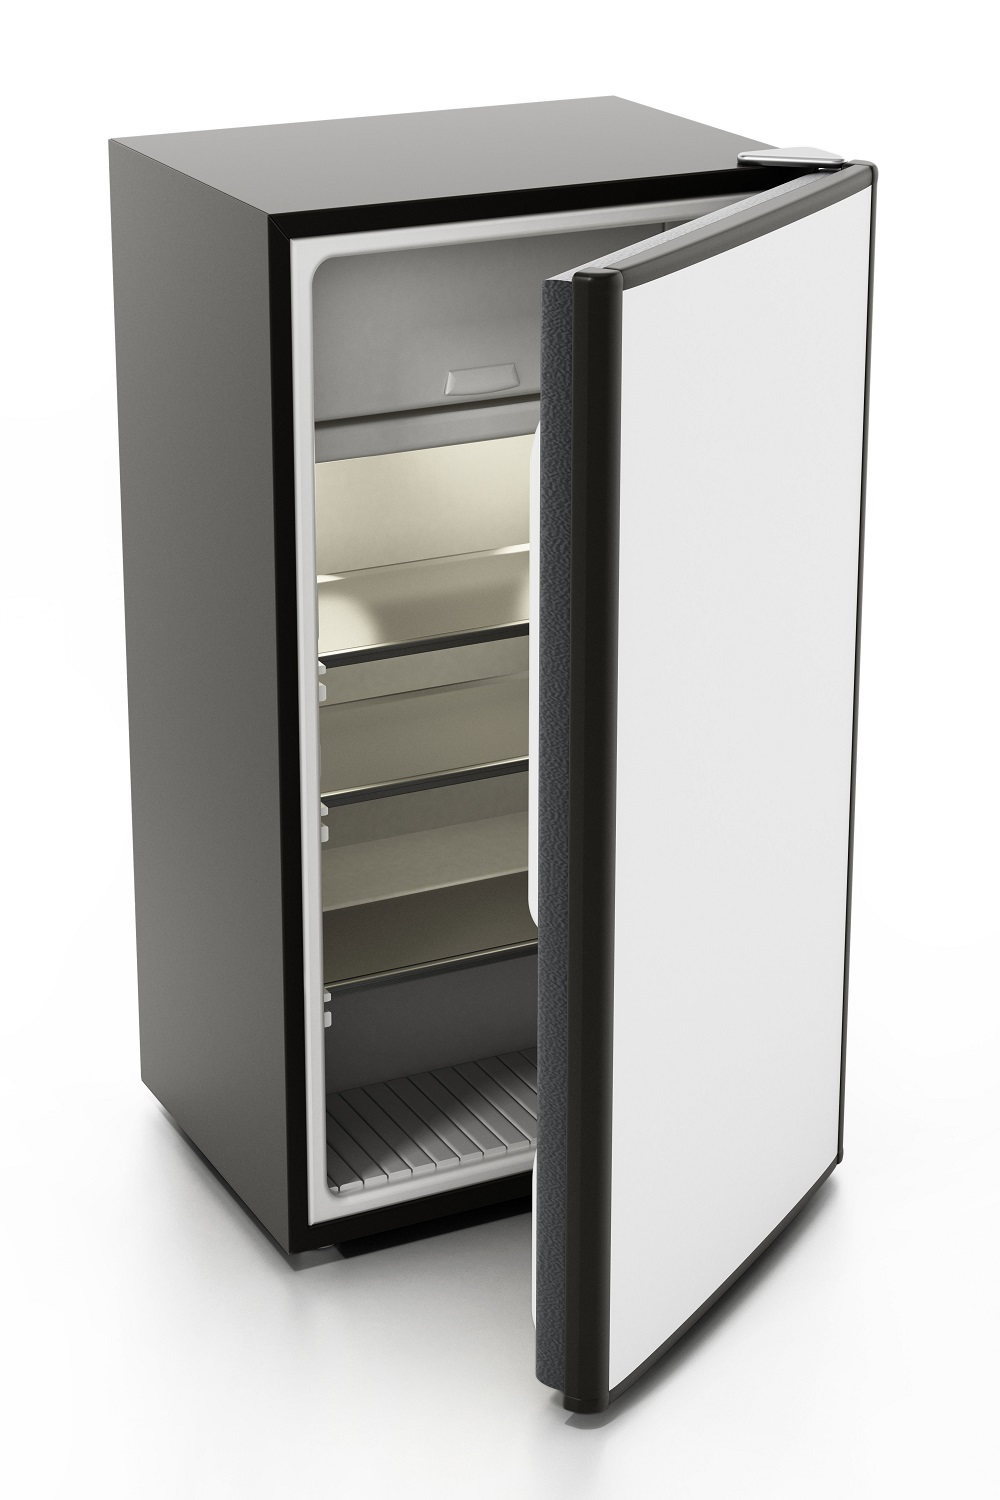 Bar Refrigerator With Ice Maker